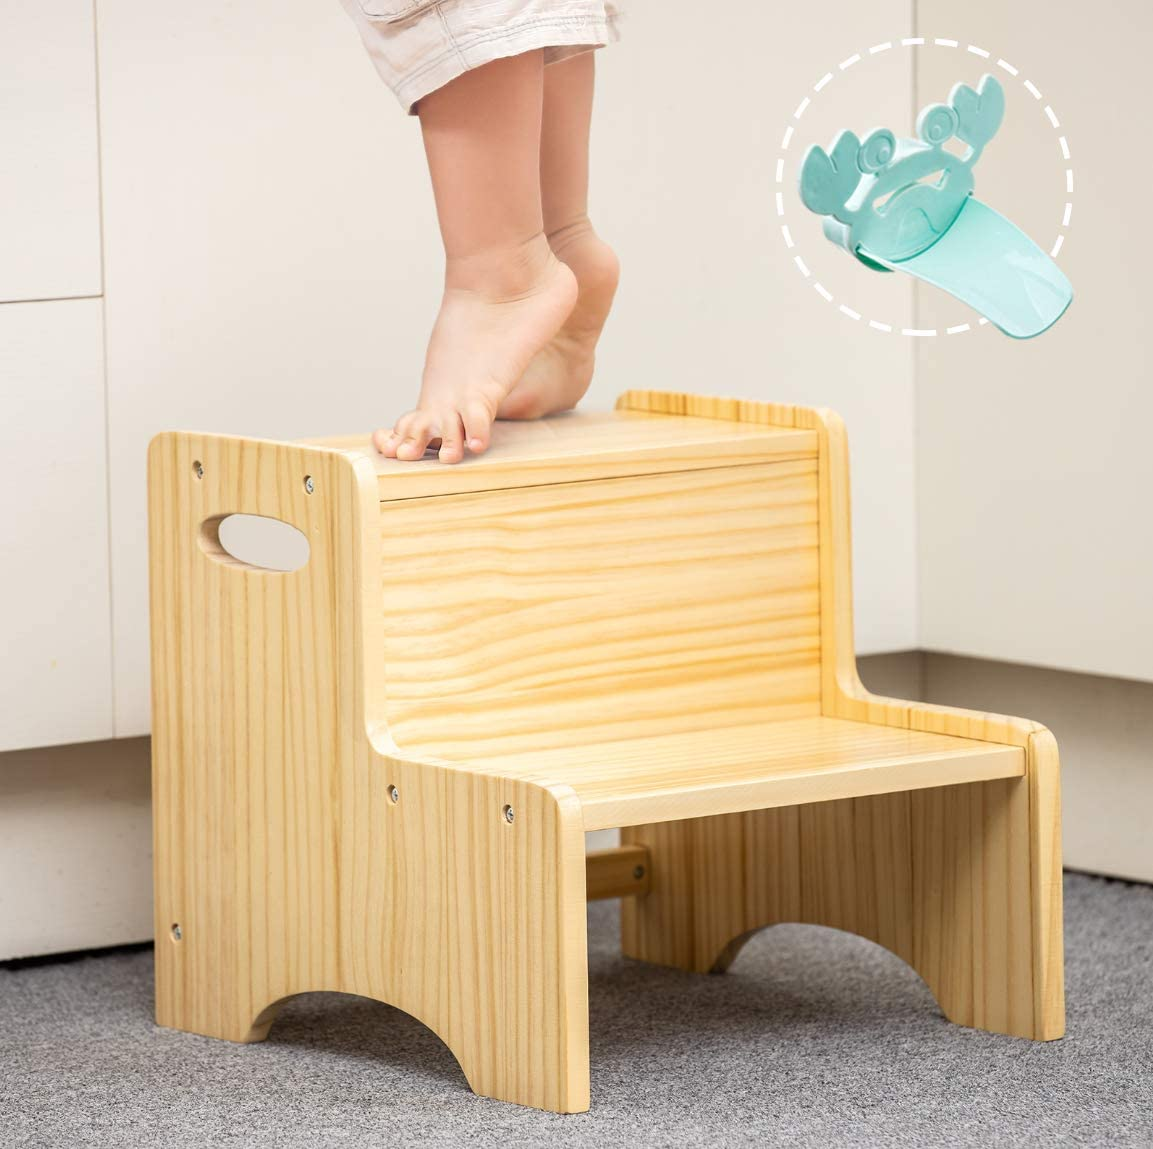 WOOD CITY Toddler Step Stool for Kids, Wooden Two Step Children's Stool with Handles, Bonus Non-Slip Pads for Safety, Bathroom Potty Stool & Kitchen Step Stools, Pine Wood: Furniture & Decor